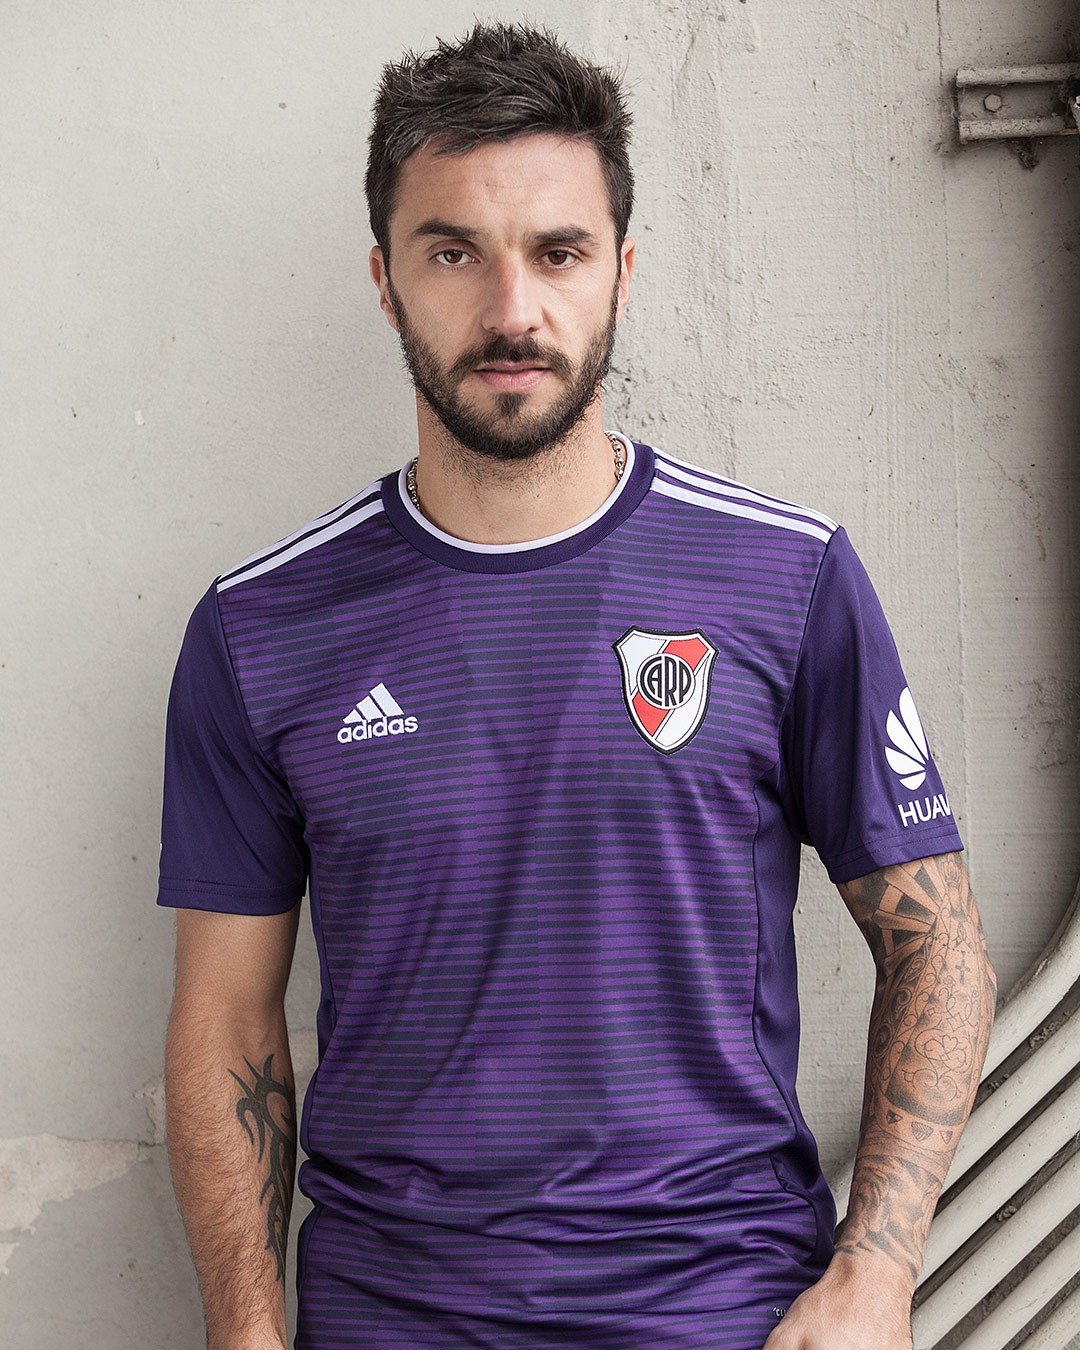 separation shoes 885f3 011d6 ... Click to enlarge image river plate 18 19 adidas away kit d.jpg